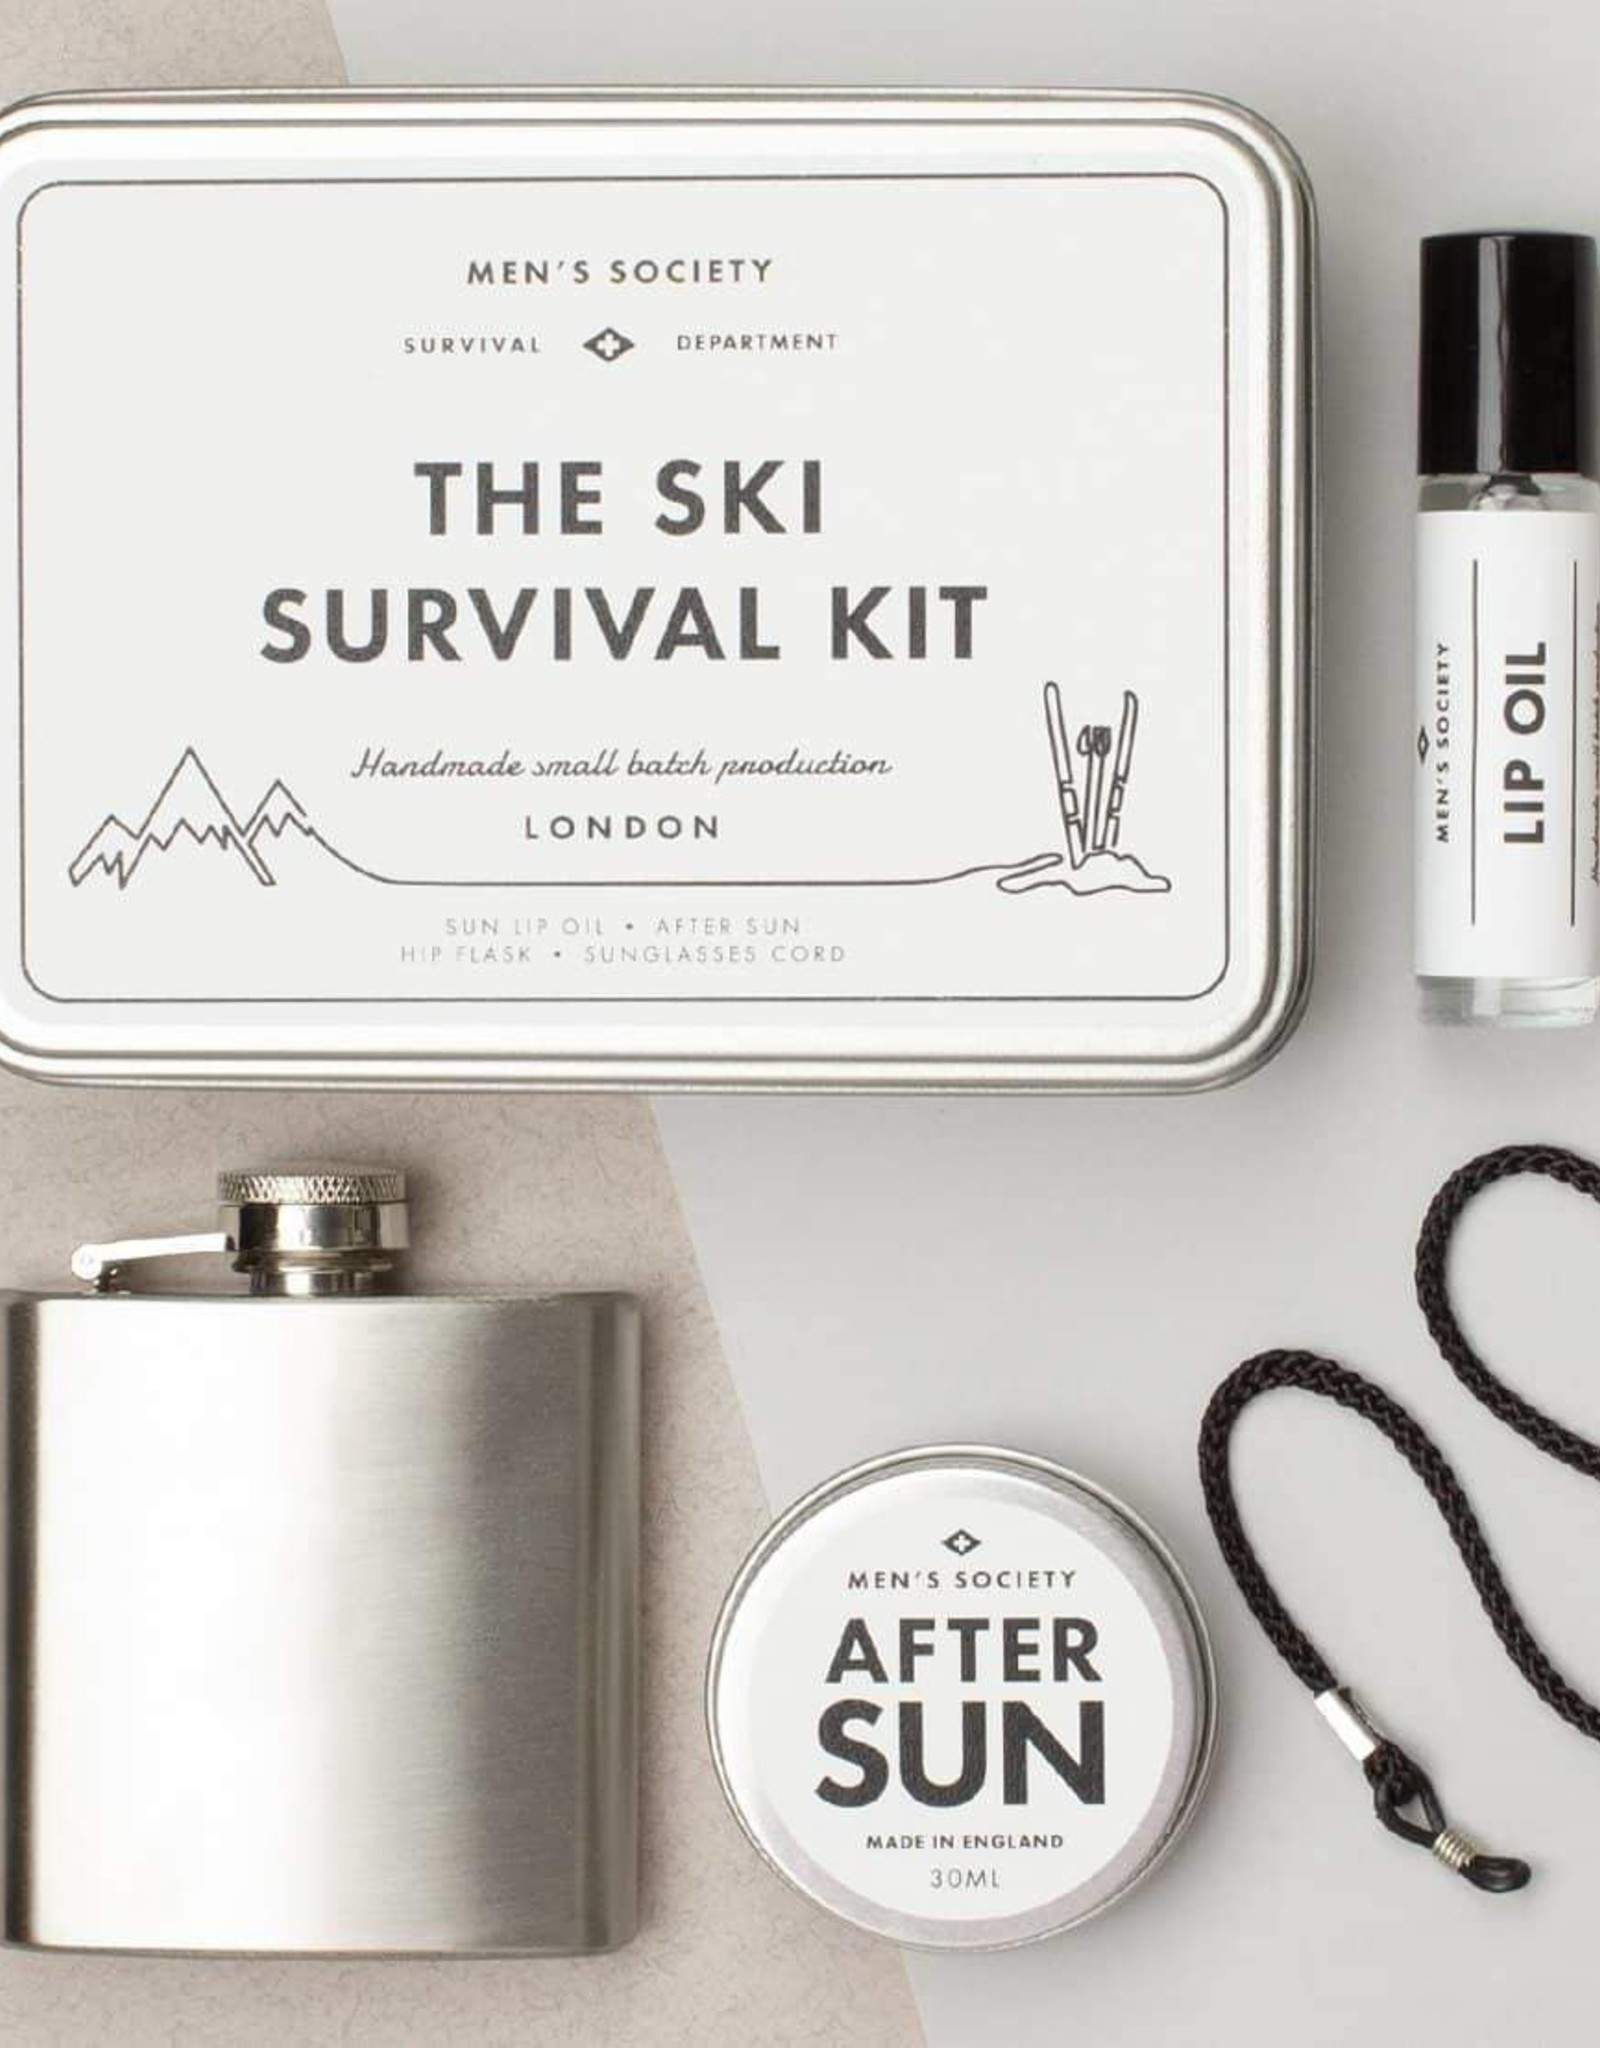 Men's Society Ski Survival Kit